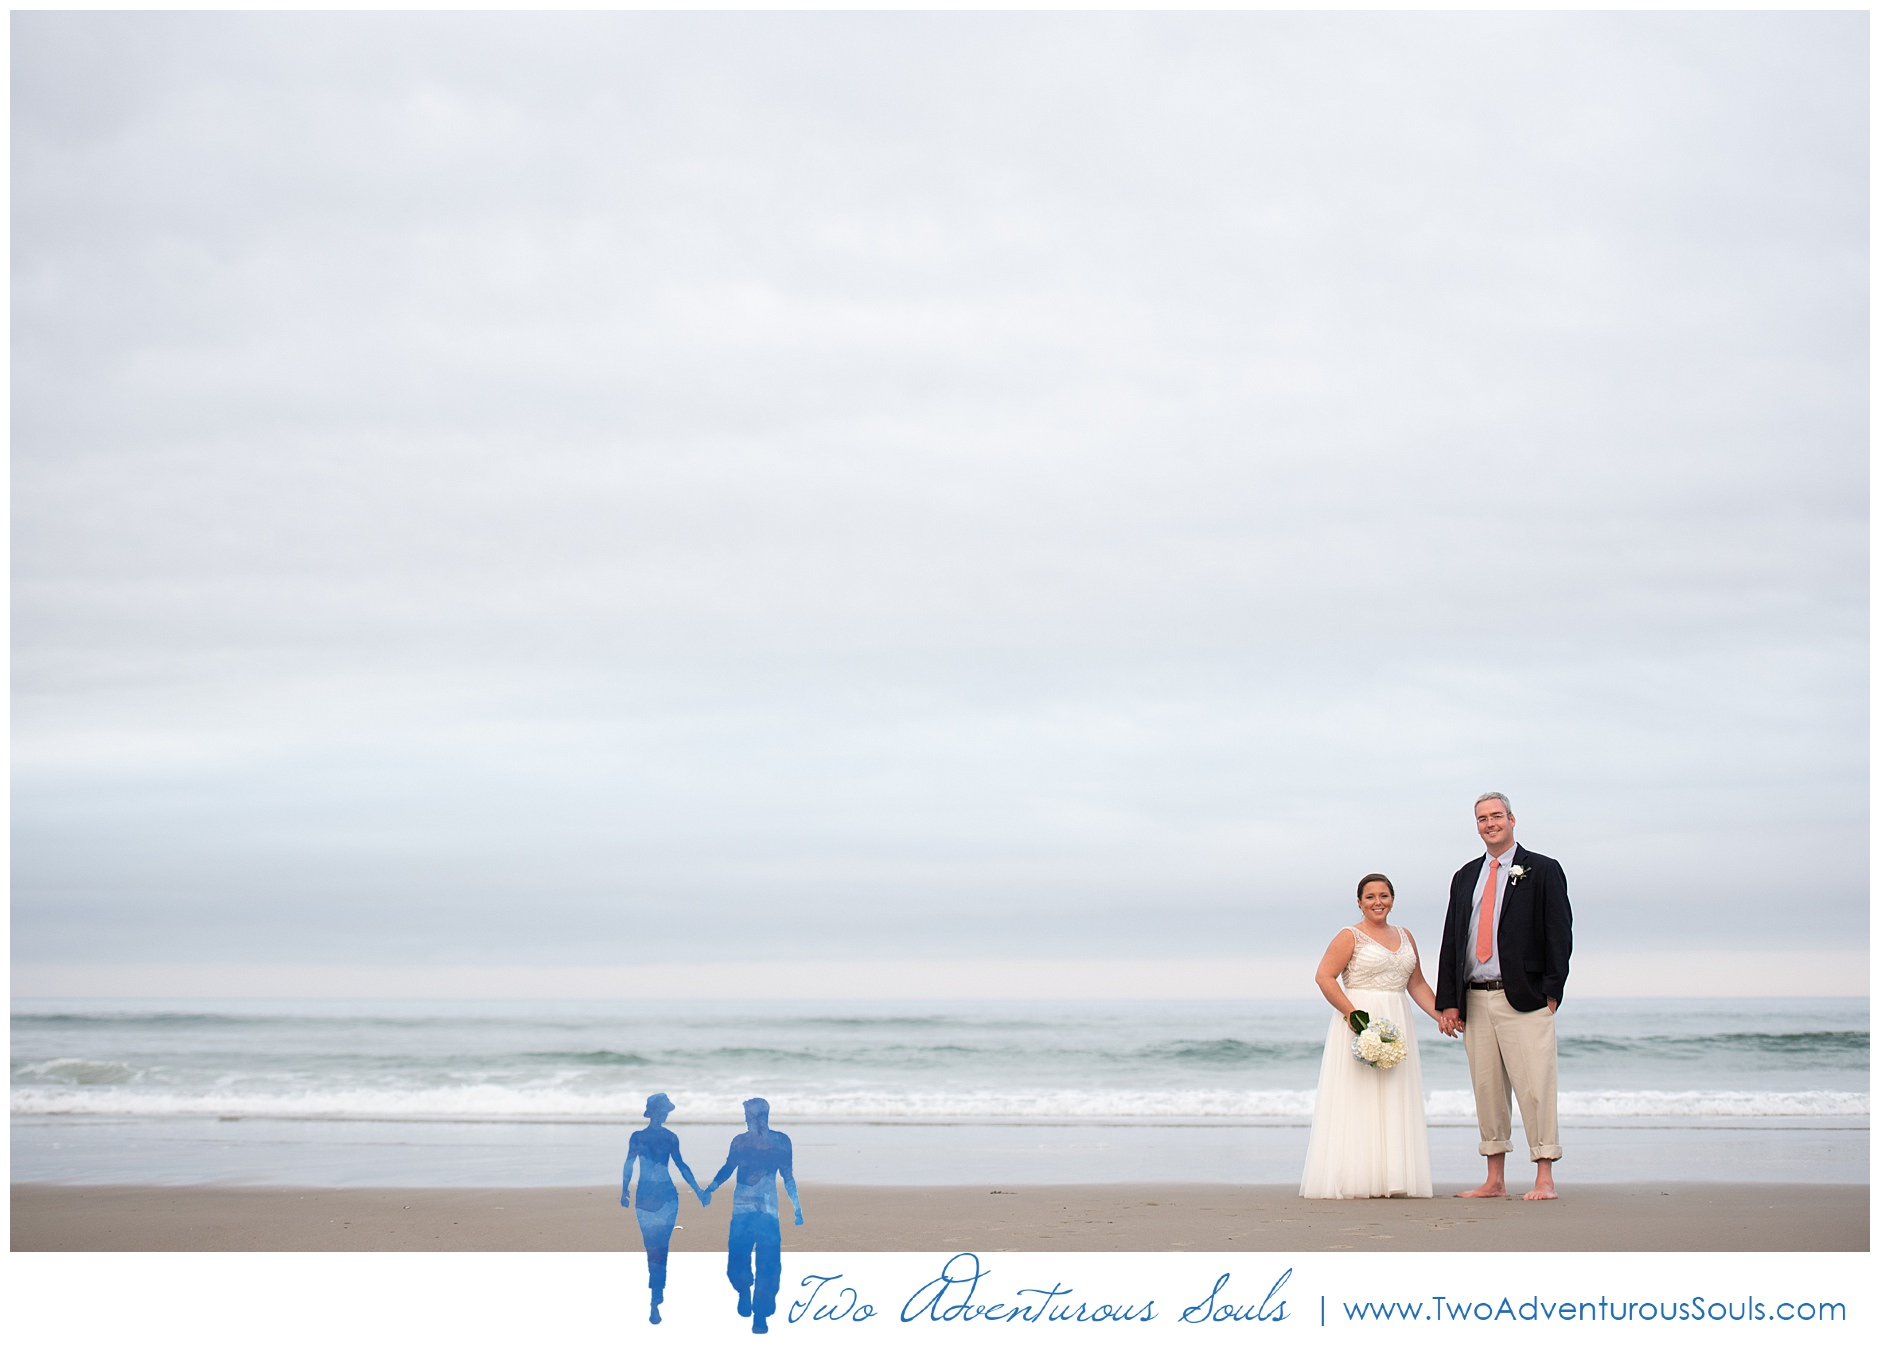 Maine Wedding Photographers, Ogunquit Wedding Photographers, Maine Elopement Photographers, Two Adventurous Souls-080619_0037.jpg